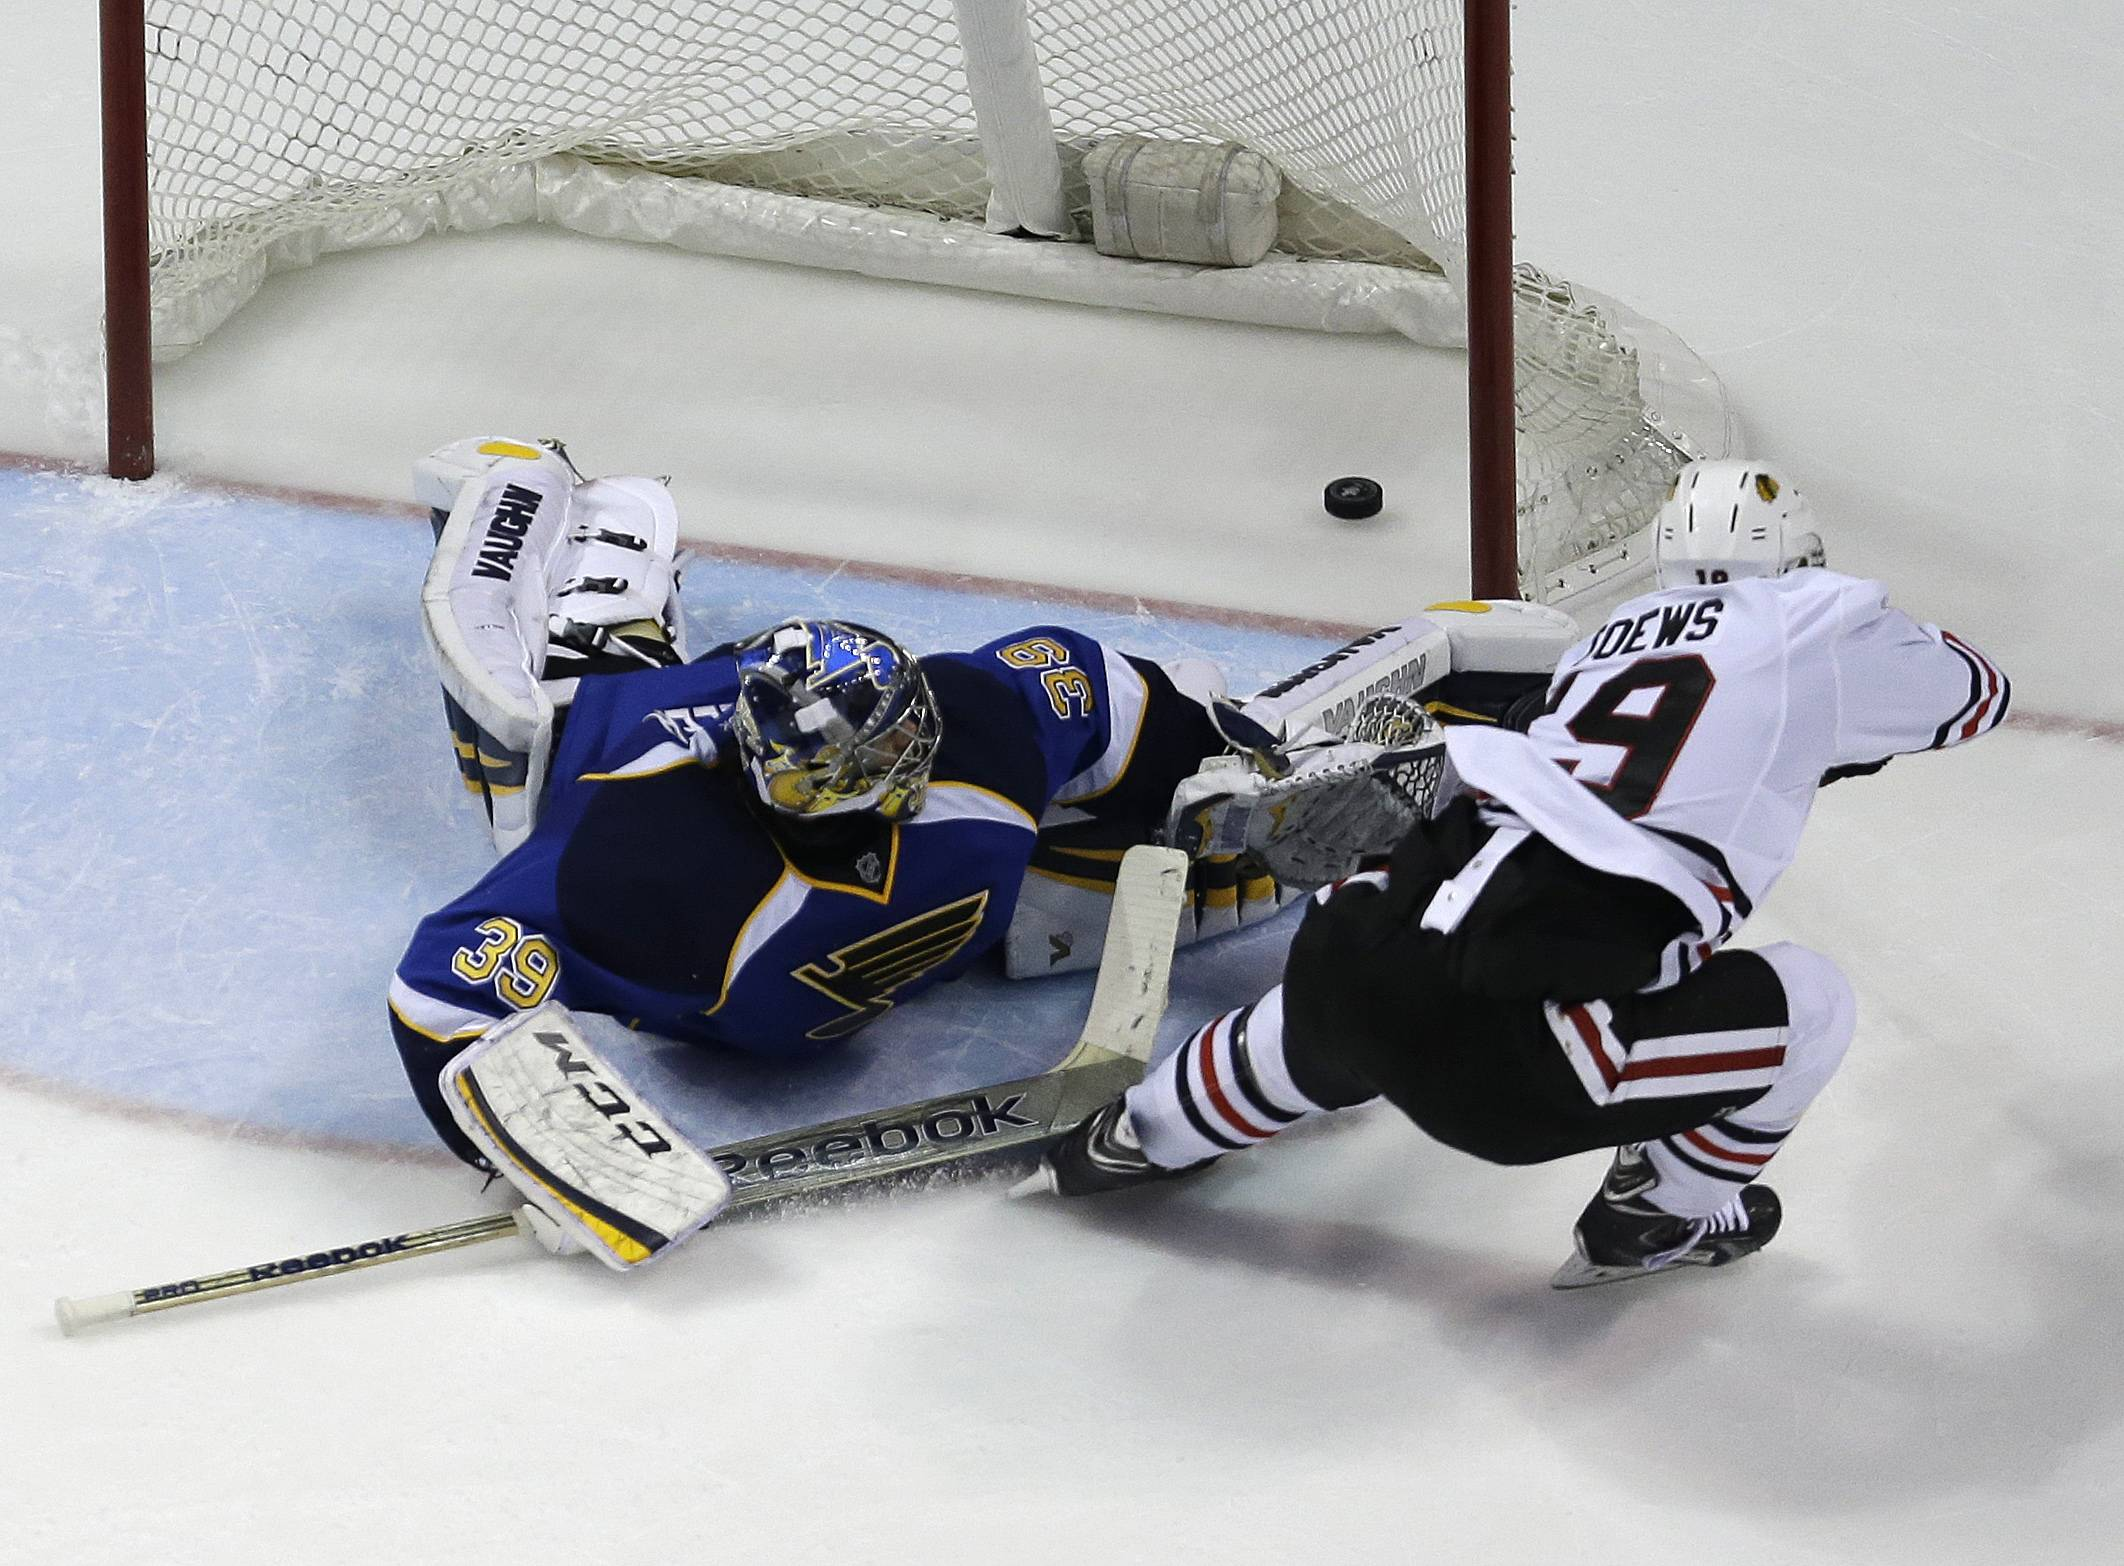 The Blackhawks' Jonathan Toews, right, scores the game-winning goal past St. Louis Blues goalie Ryan Miller during overtime in Game 5 of a first-round NHL hockey playoff series Friday in St. Louis. The Blackhawks won 3-2.